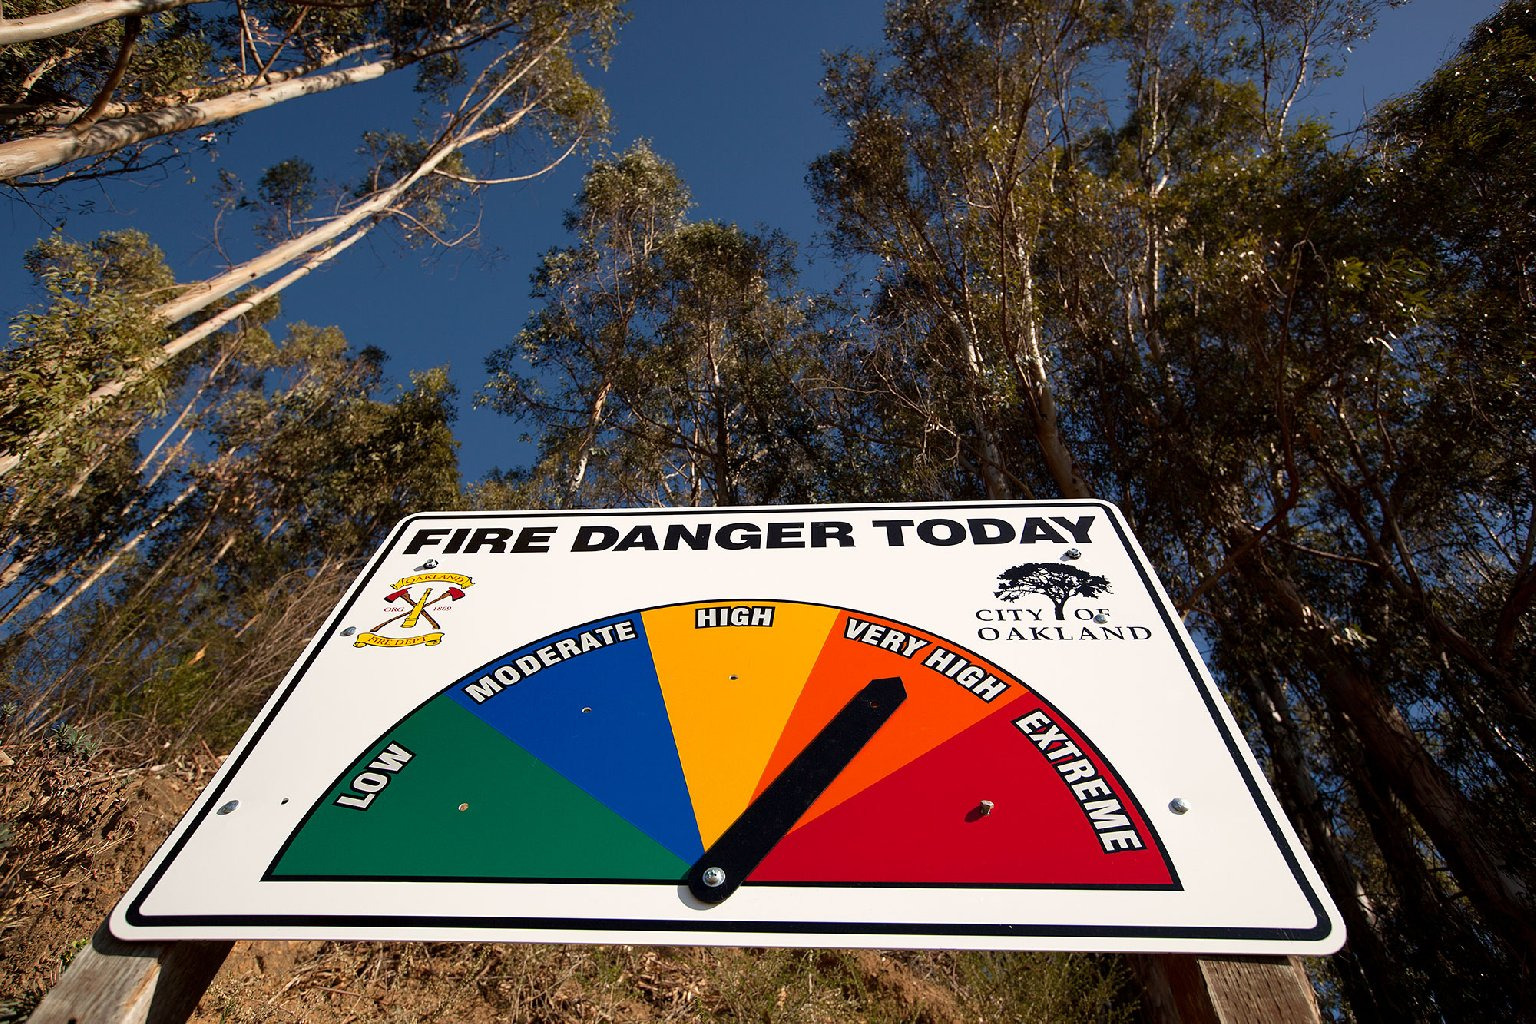 Unseasonal heat has prompted a fire warning sign in the Oakland hills. (Mark Andrew Boyer/KQED)